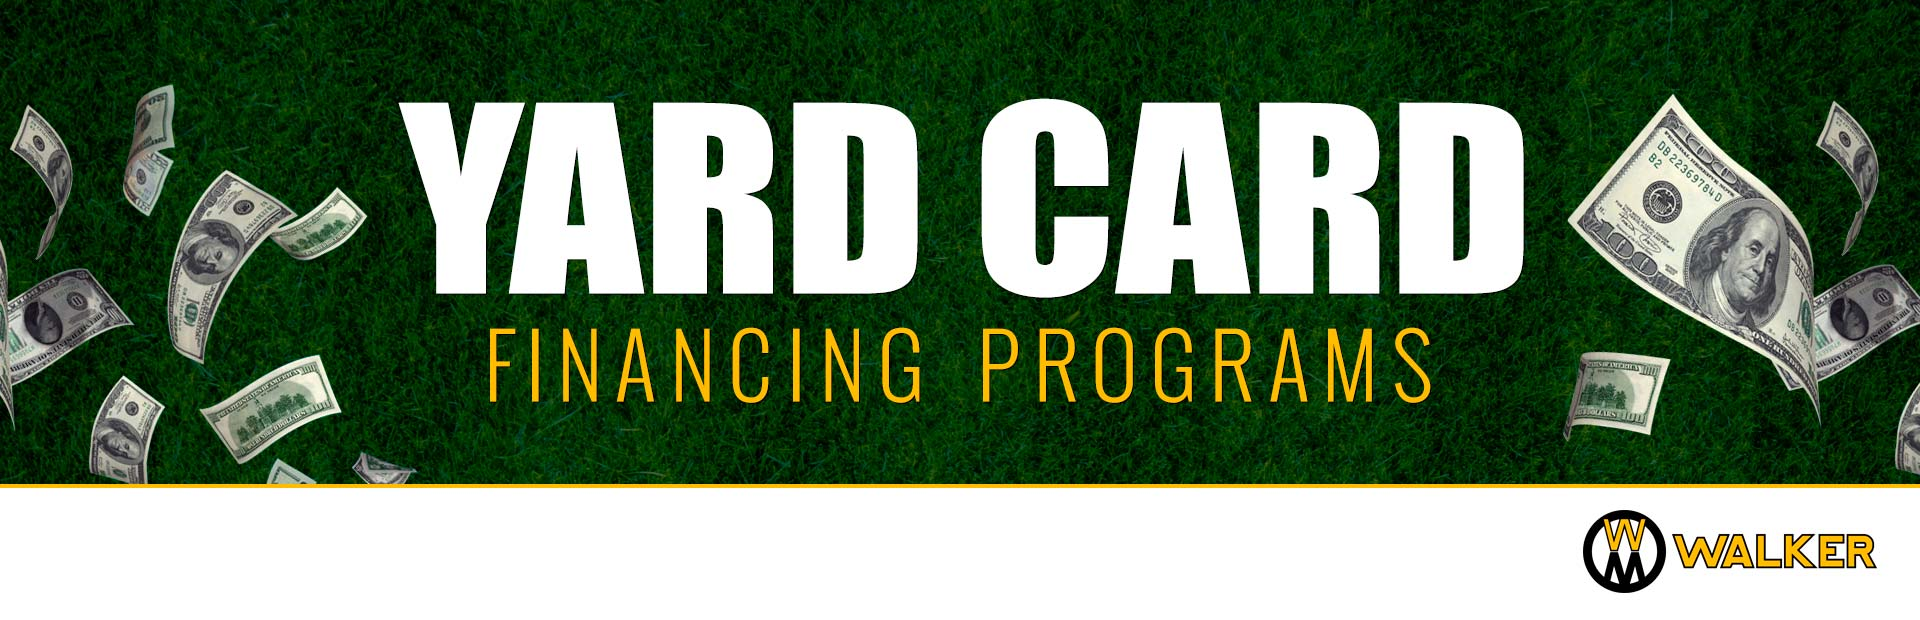 Walker Mowers: Walker - Yard Card Financing Programs